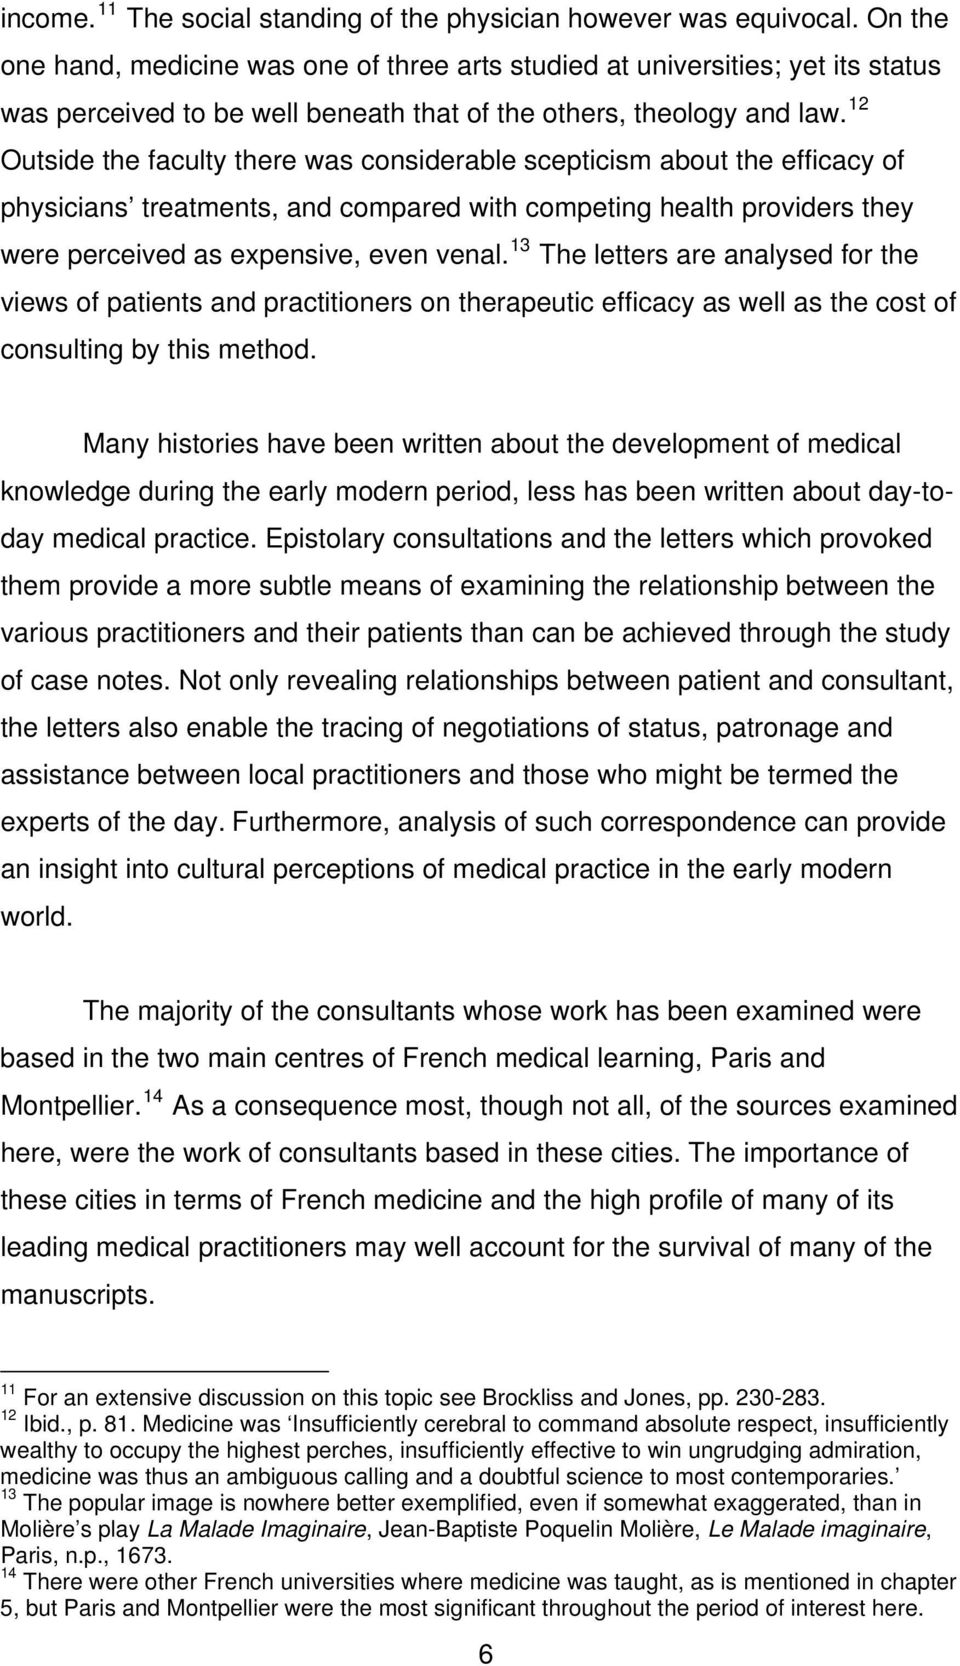 12 Outside the faculty there was considerable scepticism about the efficacy of physicians treatments, and compared with competing health providers they were perceived as expensive, even venal.